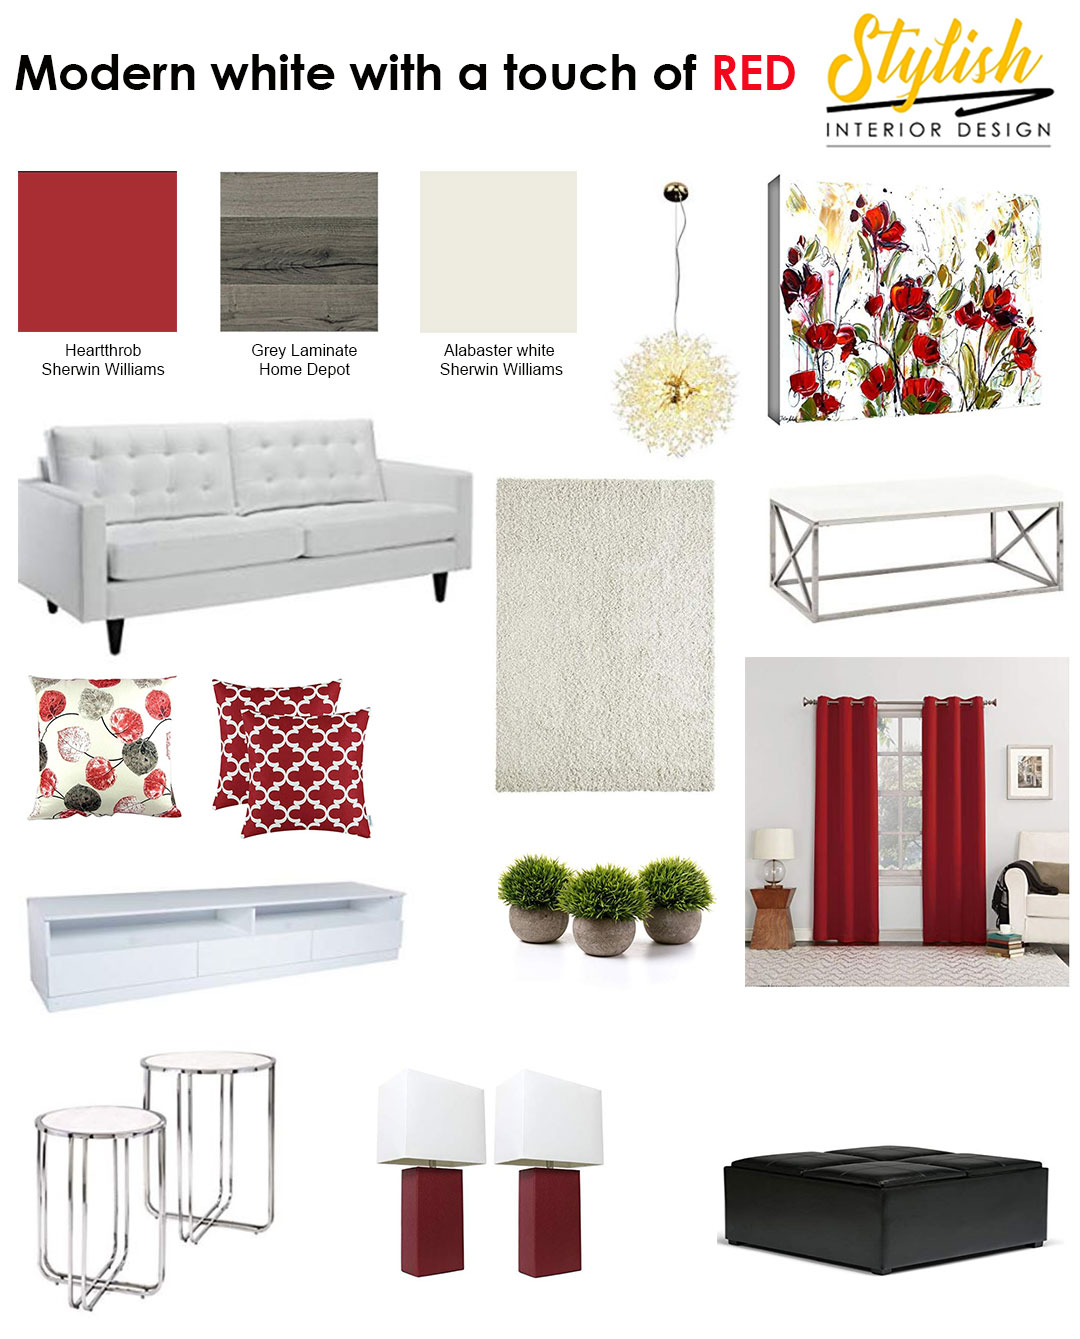 Mood board for living room colour schemes with a splash of red